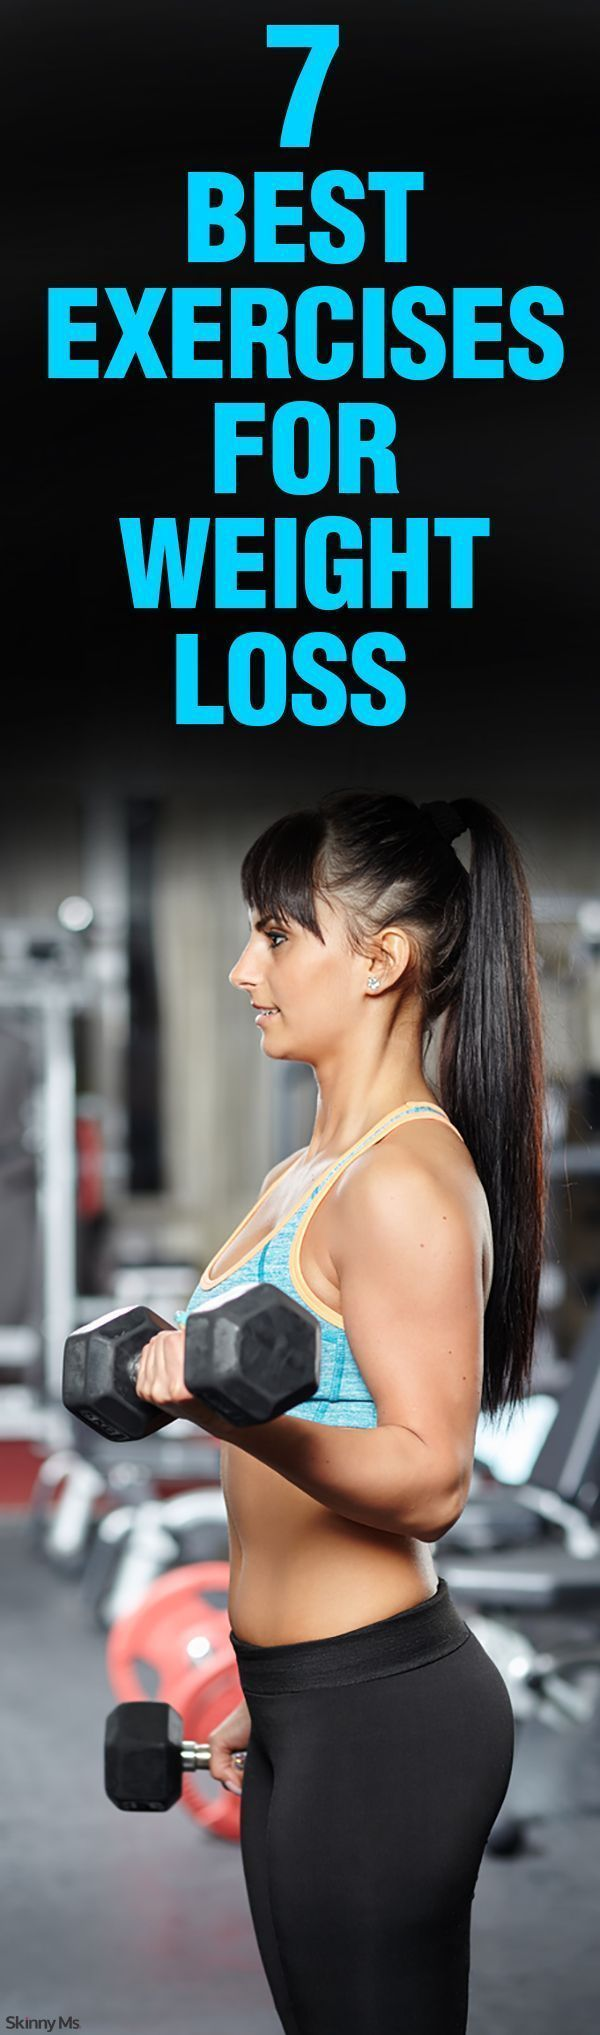 7 Best Beginner's Workouts for Weight Loss to Start Now foto